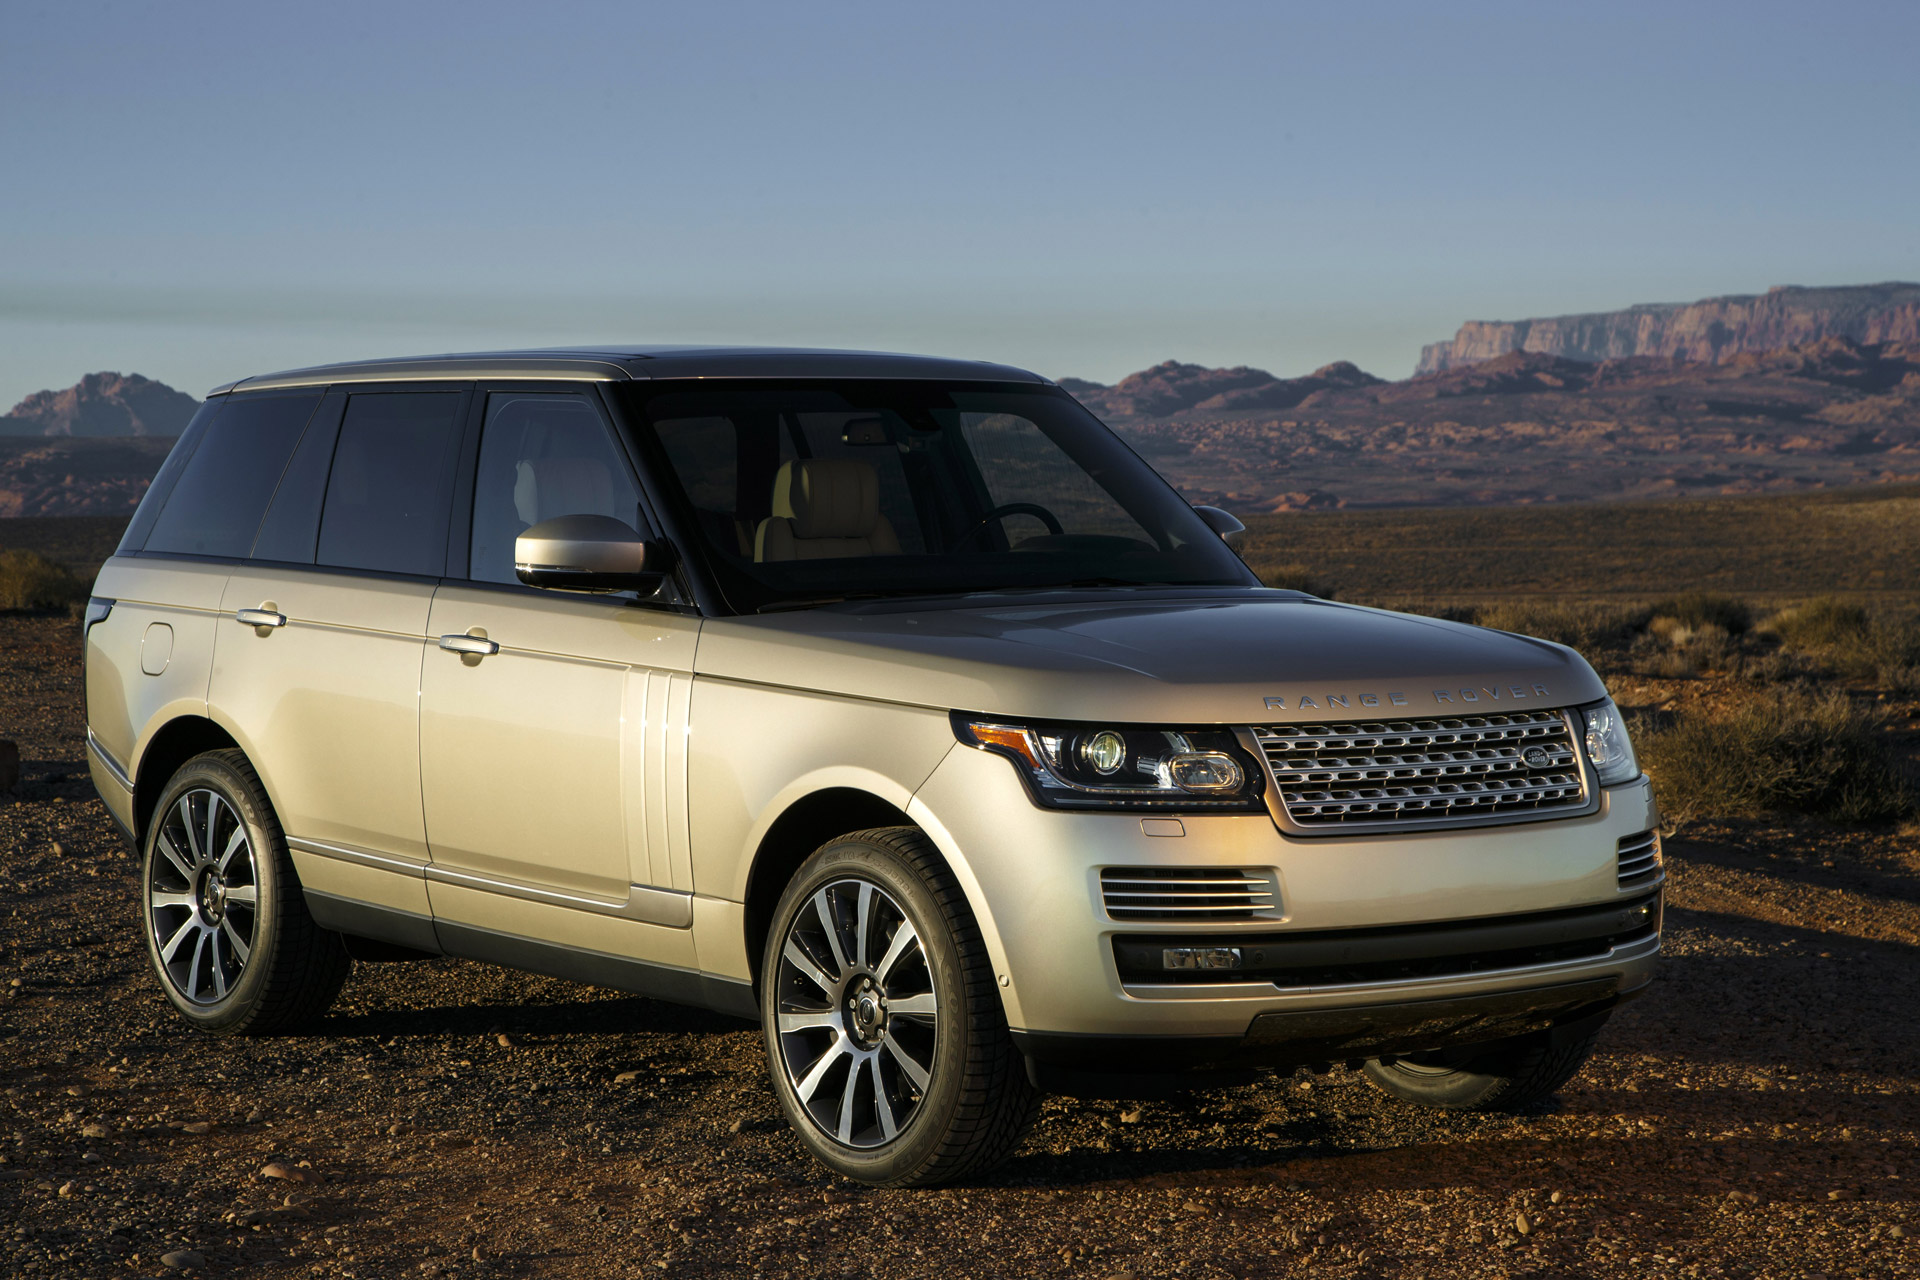 2015 Land Rover Range Rover Review, Ratings, Specs, Prices